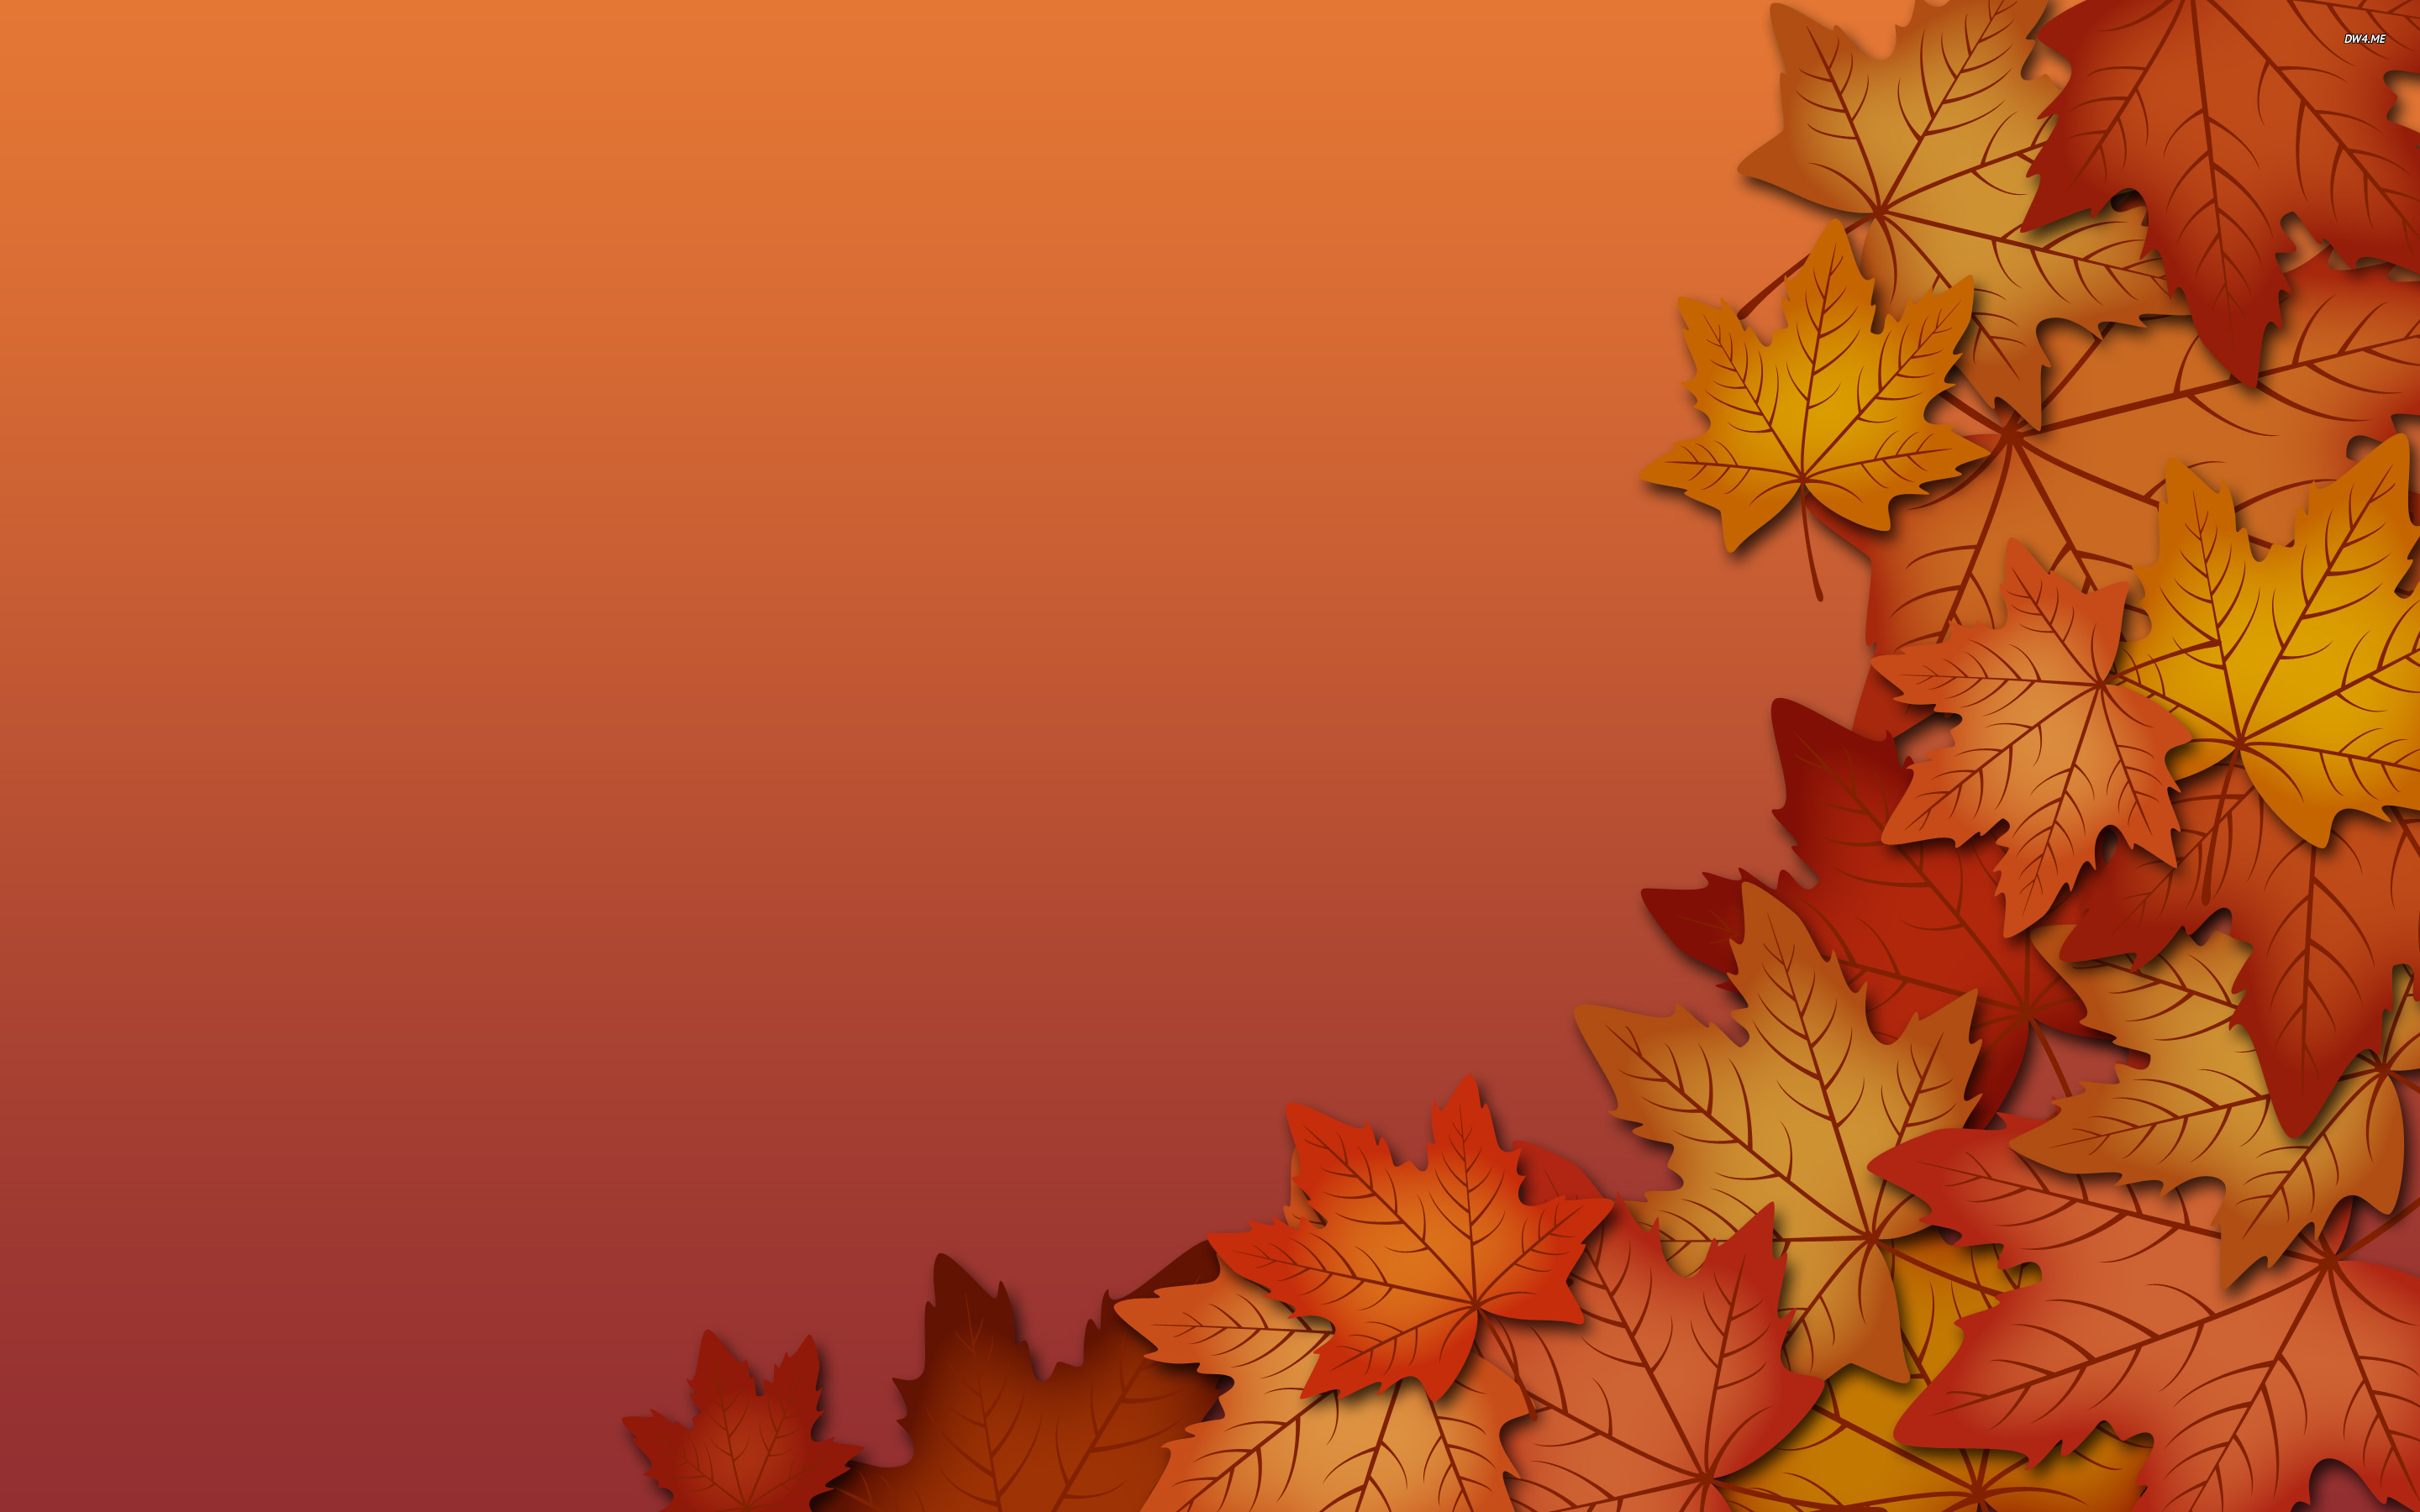 Cute fall desktop clipart - ClipartFest